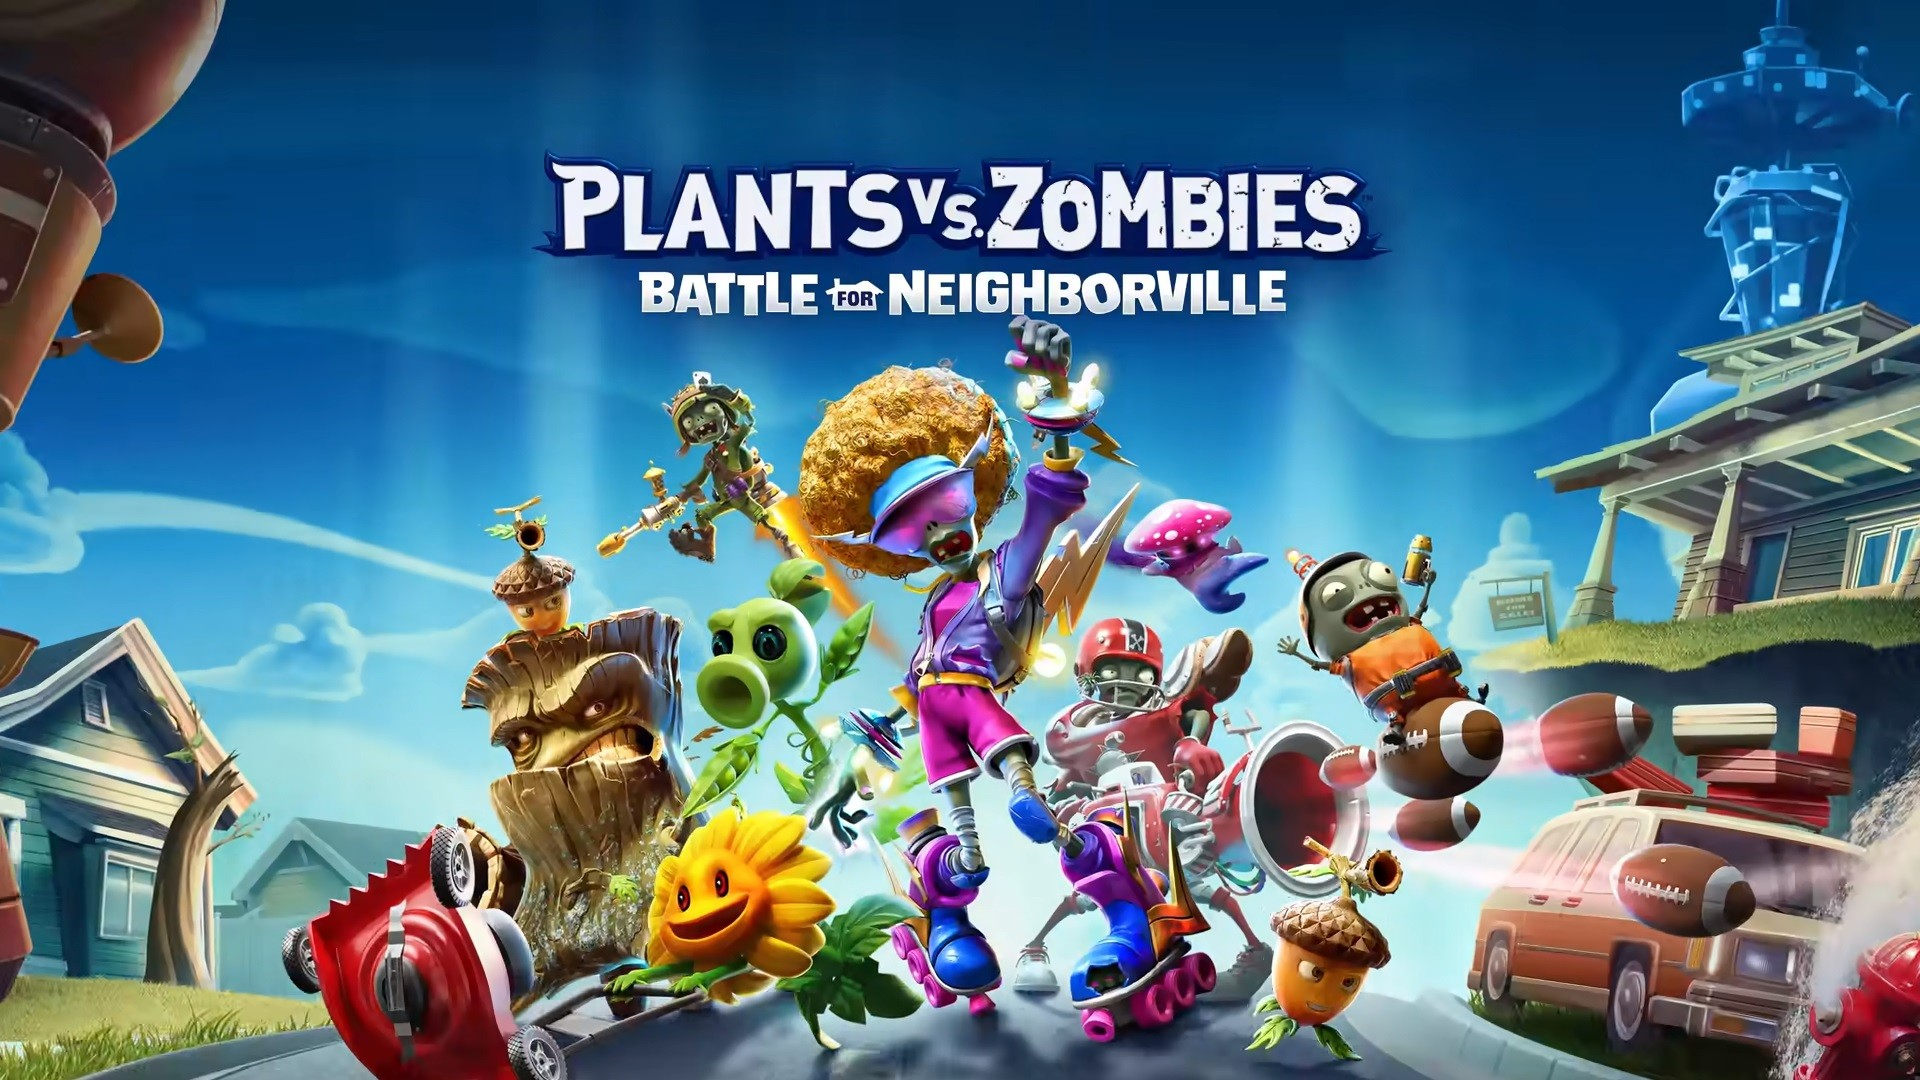 Plants vs Zombies Battle for Neighborville download for android